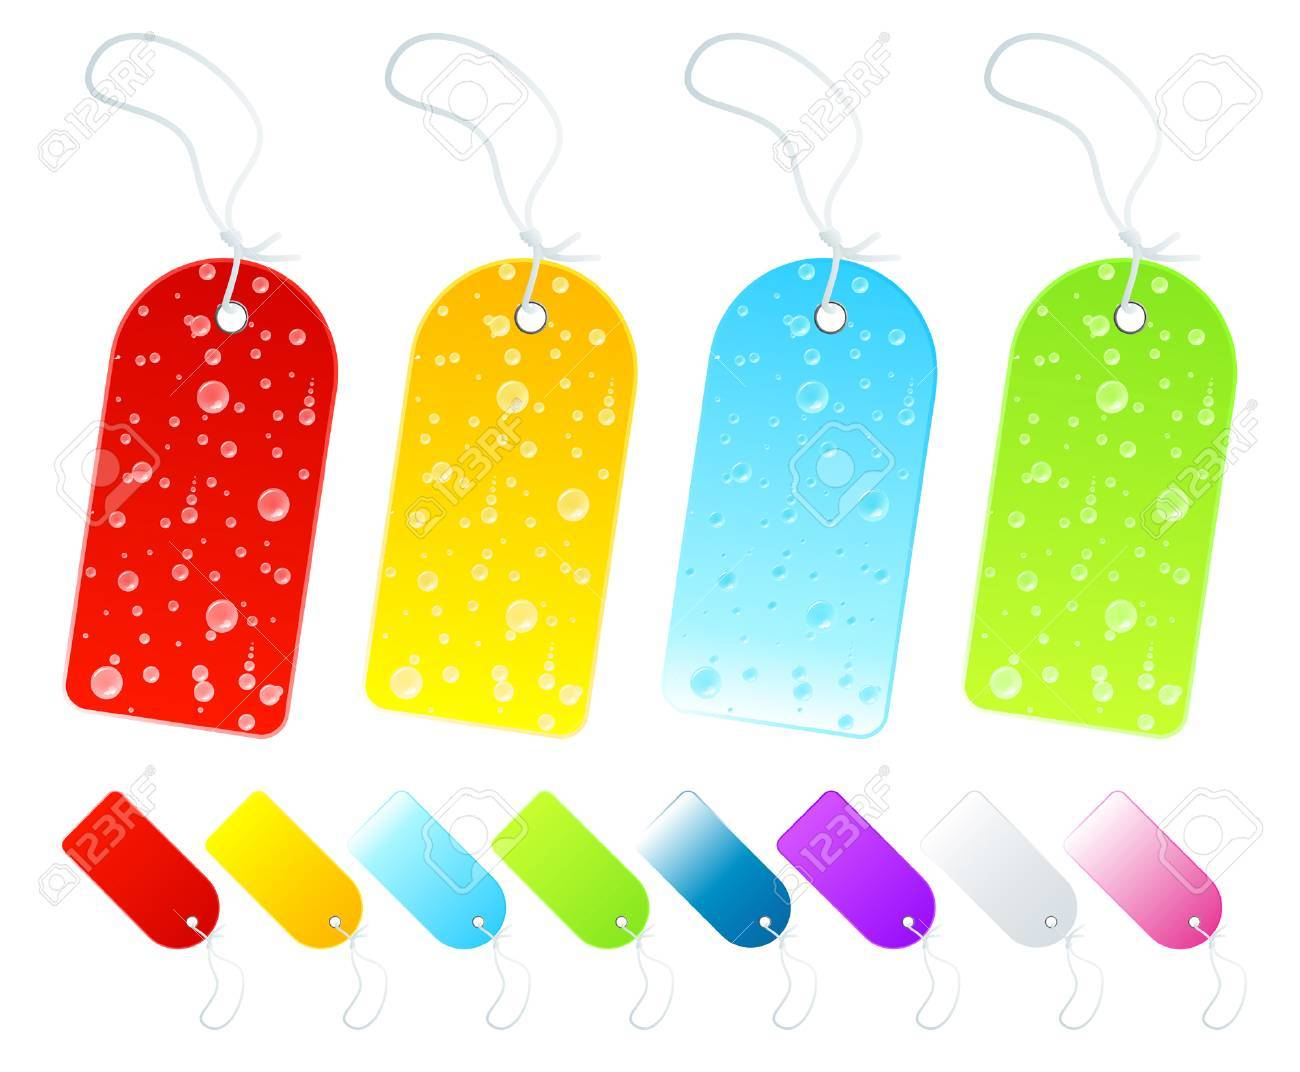 Vector illustration of beautiful season tags and labels in various shiny gradients. Four with wet weather drop details. Stock Vector - 3551590